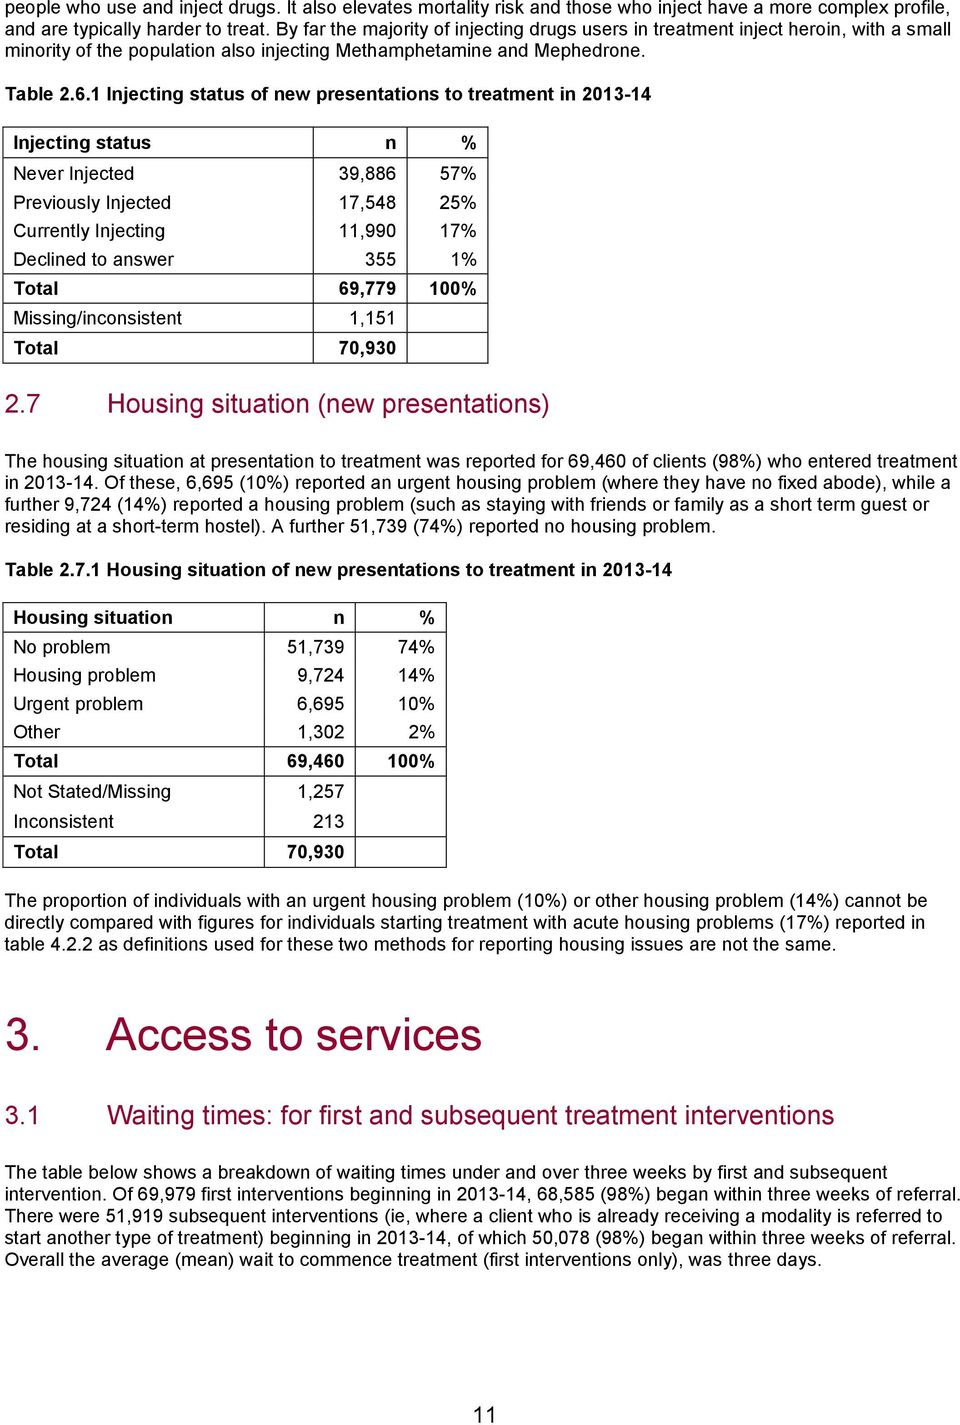 1 Injecting status of new presentations to treatment in 2013-14 Injecting status n % Never Injected 39,886 57% Previously Injected 17,548 25% Currently Injecting 11,990 17% Declined to answer 355 1%